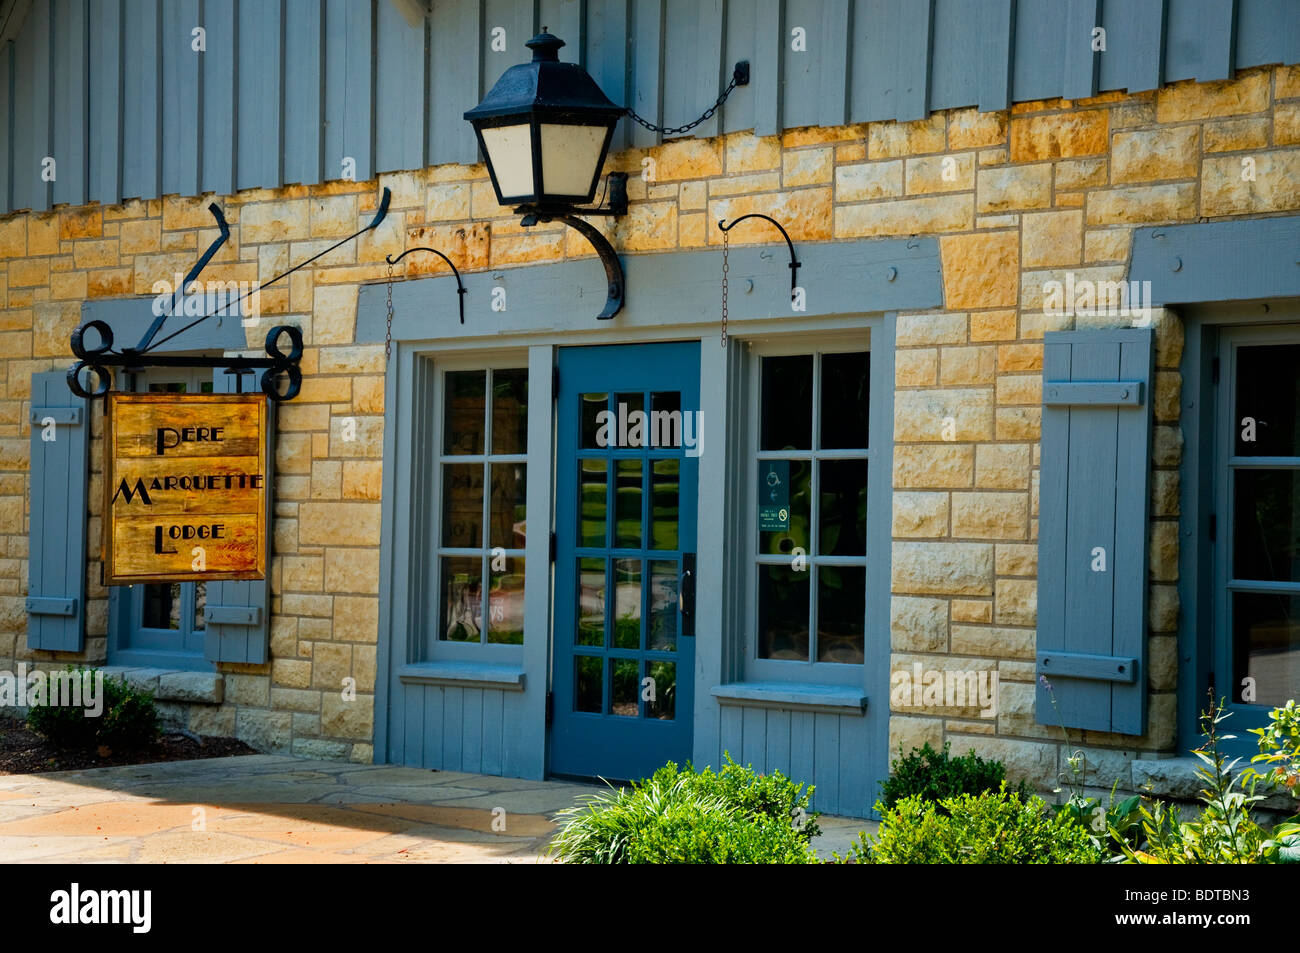 The Lodge at Pere Marquette State Park which  is a stop along the Meeting of the Great Rivers Scenic Byway . - Stock Image